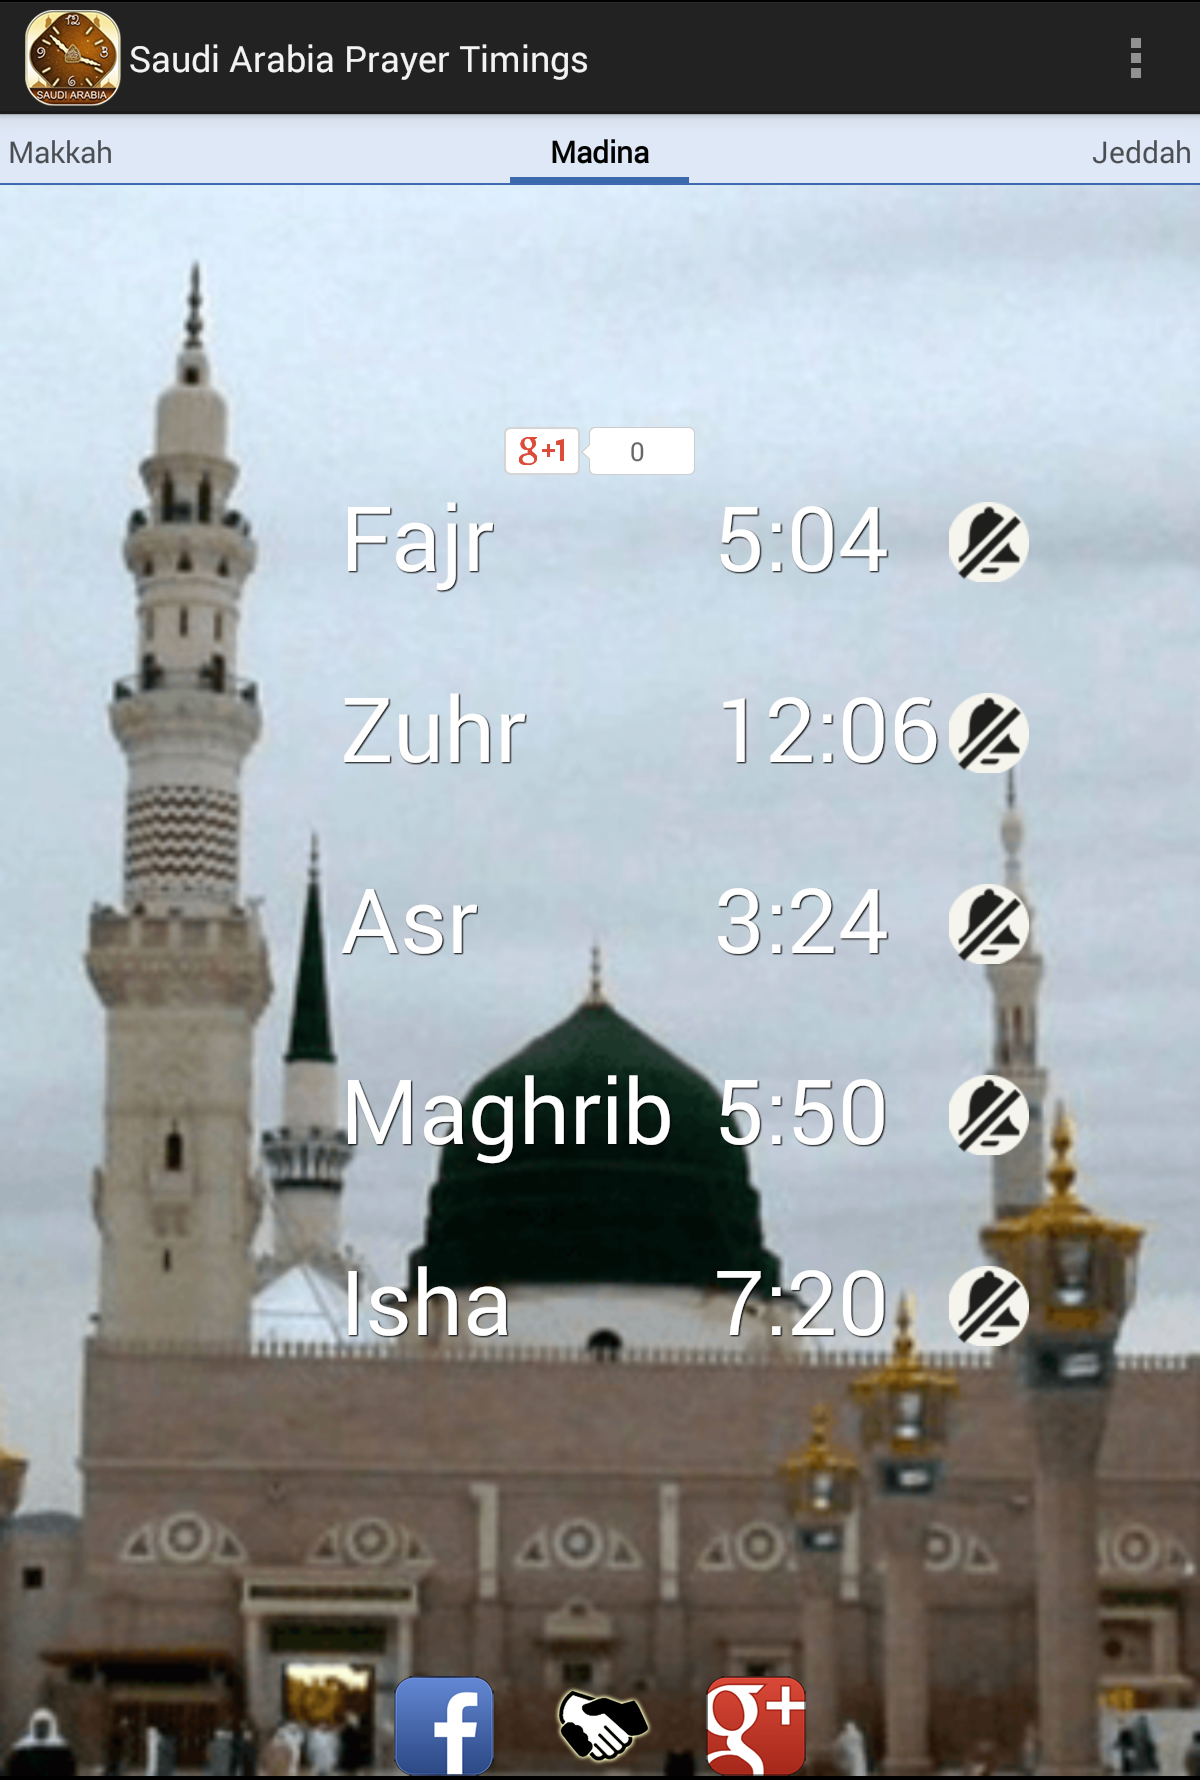 Saudi Arabia KSA Prayer Times